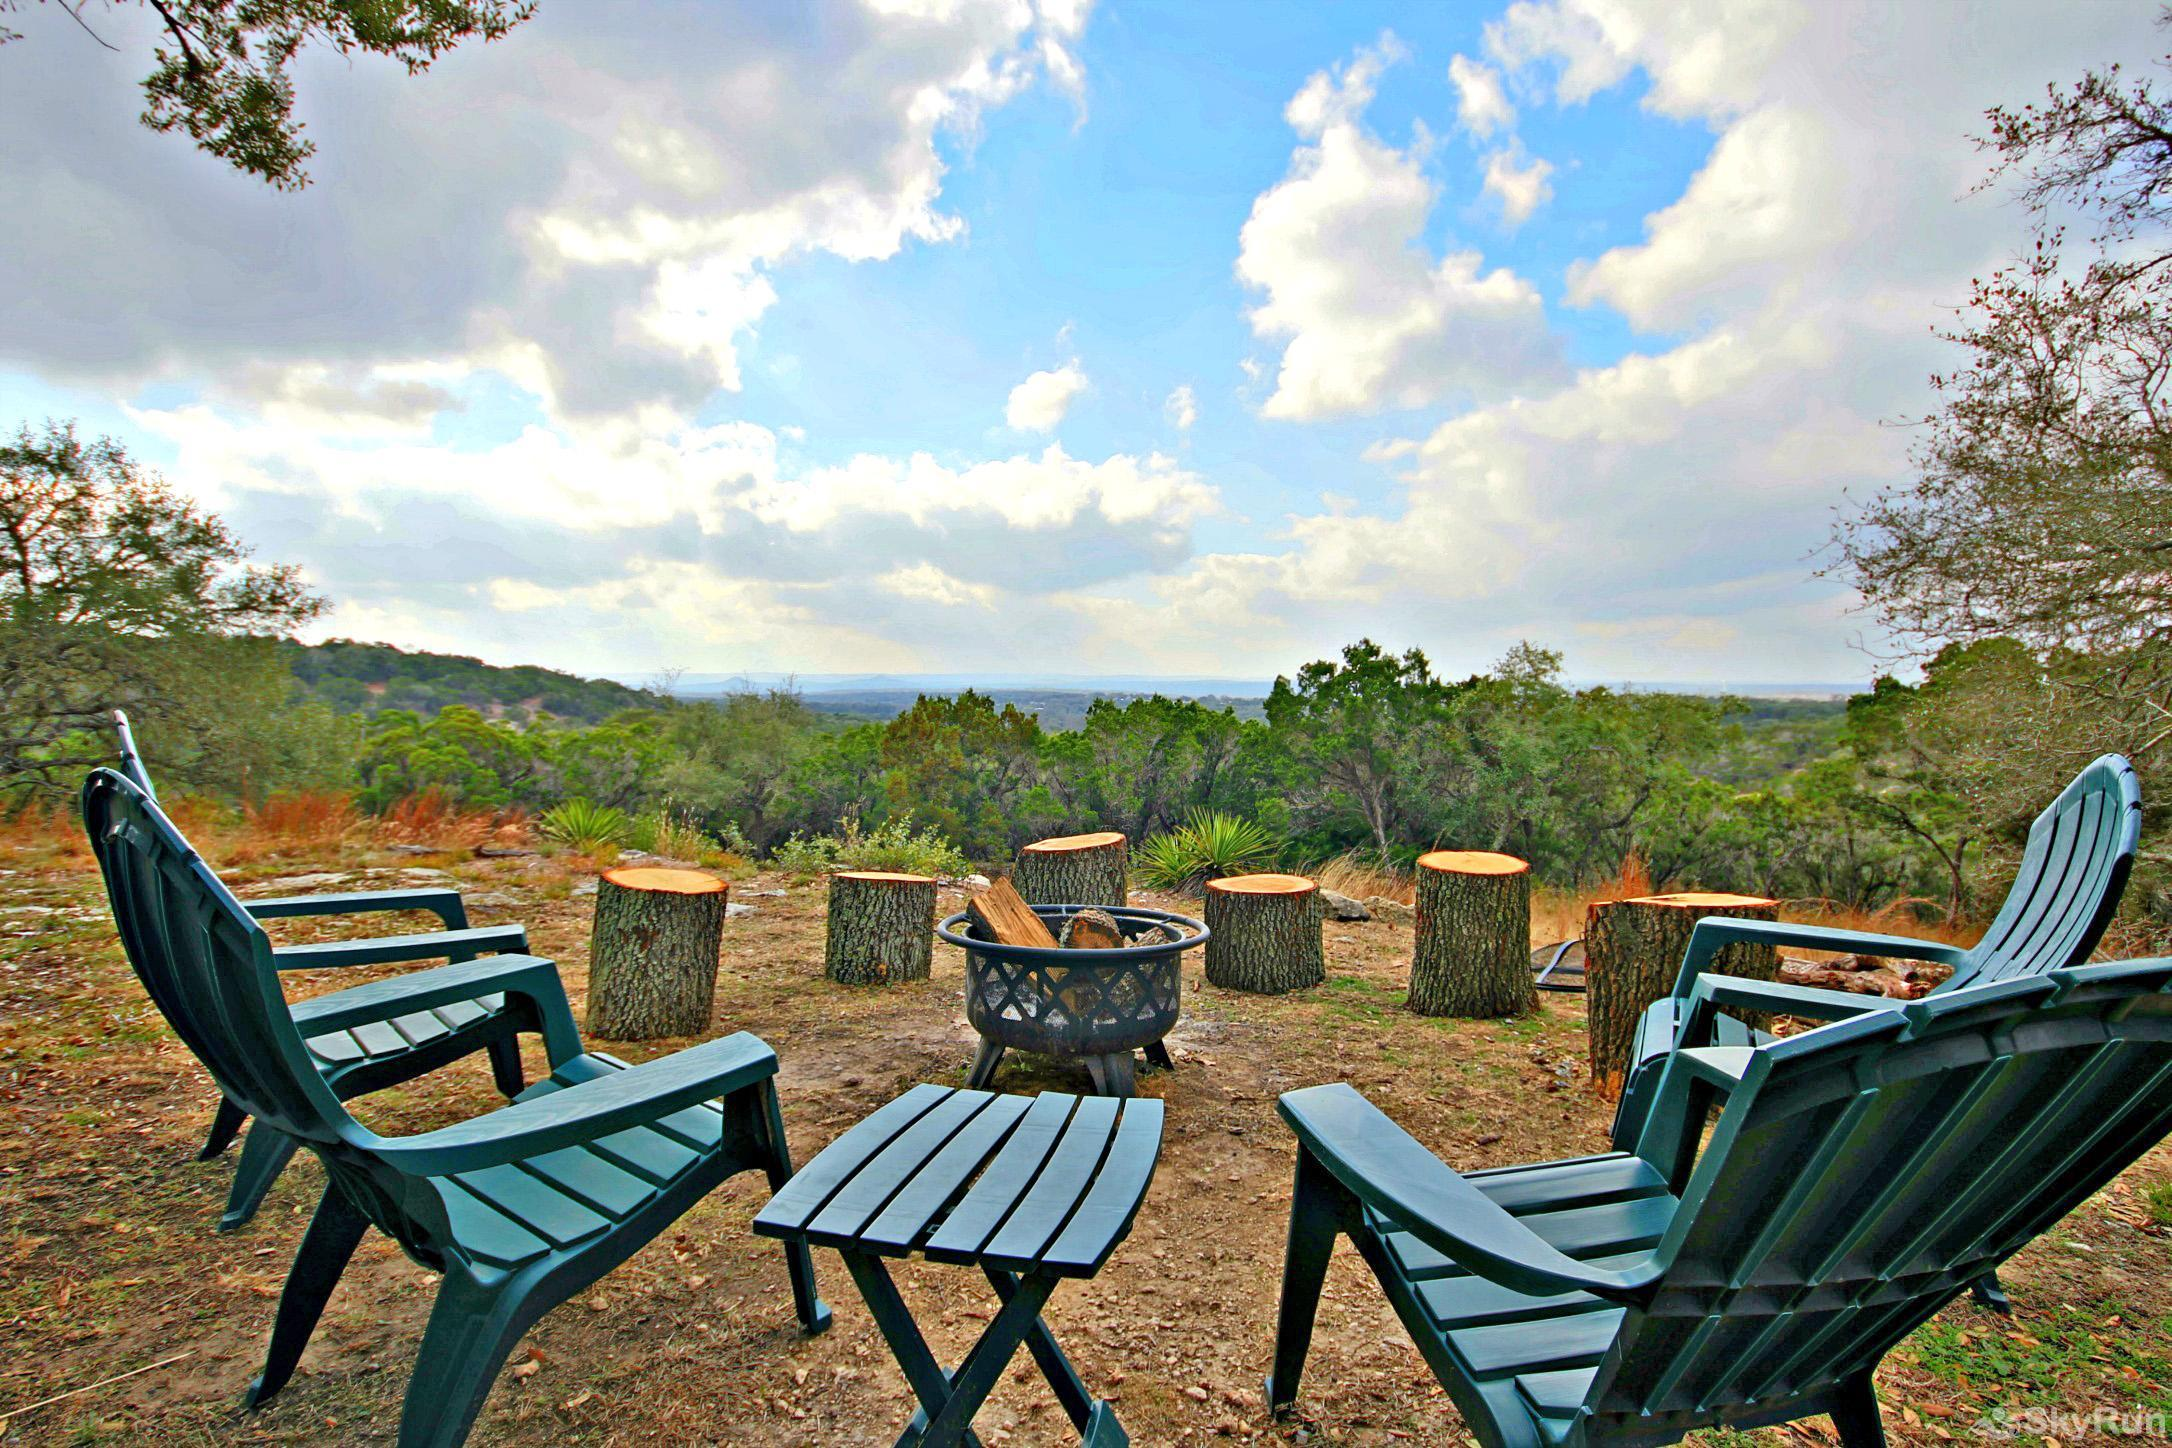 HILLTOP HIDEAWAY Campfire Area and Views from the Highest Point in Wimberley